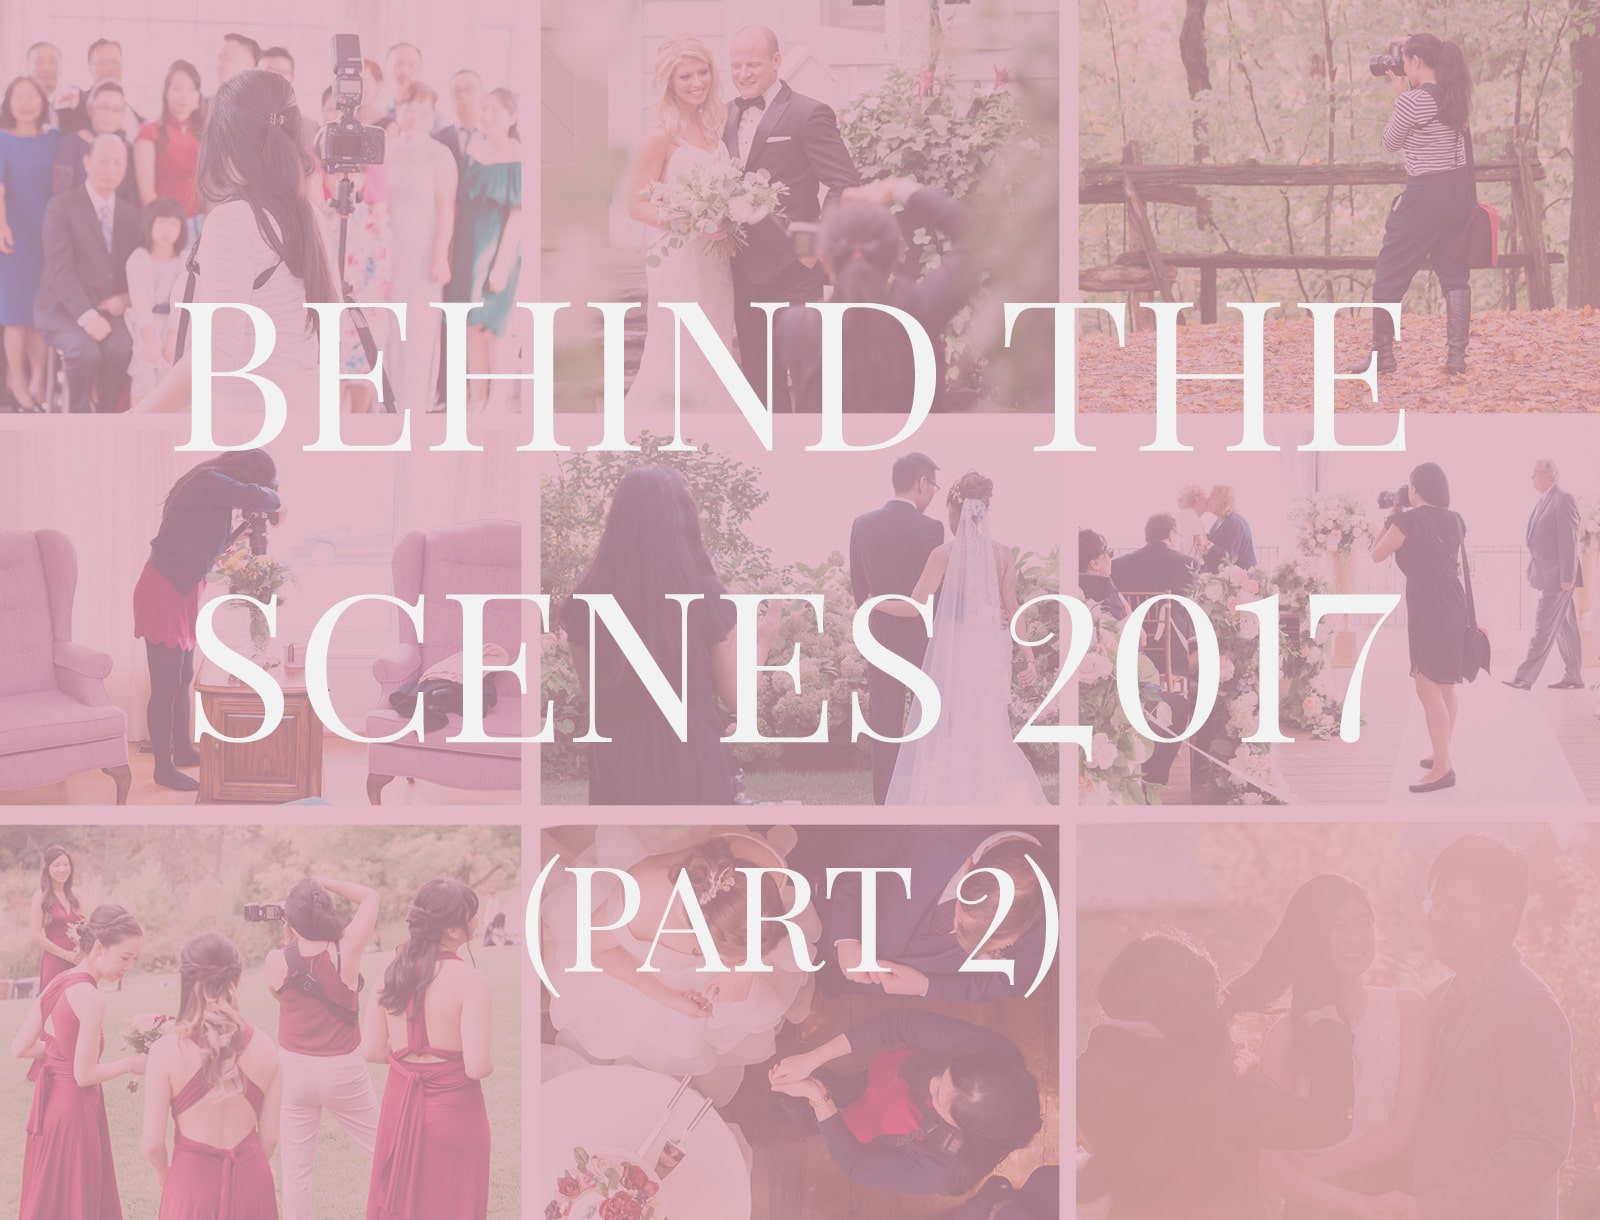 Behind The Scenes 2017 (Part 2)